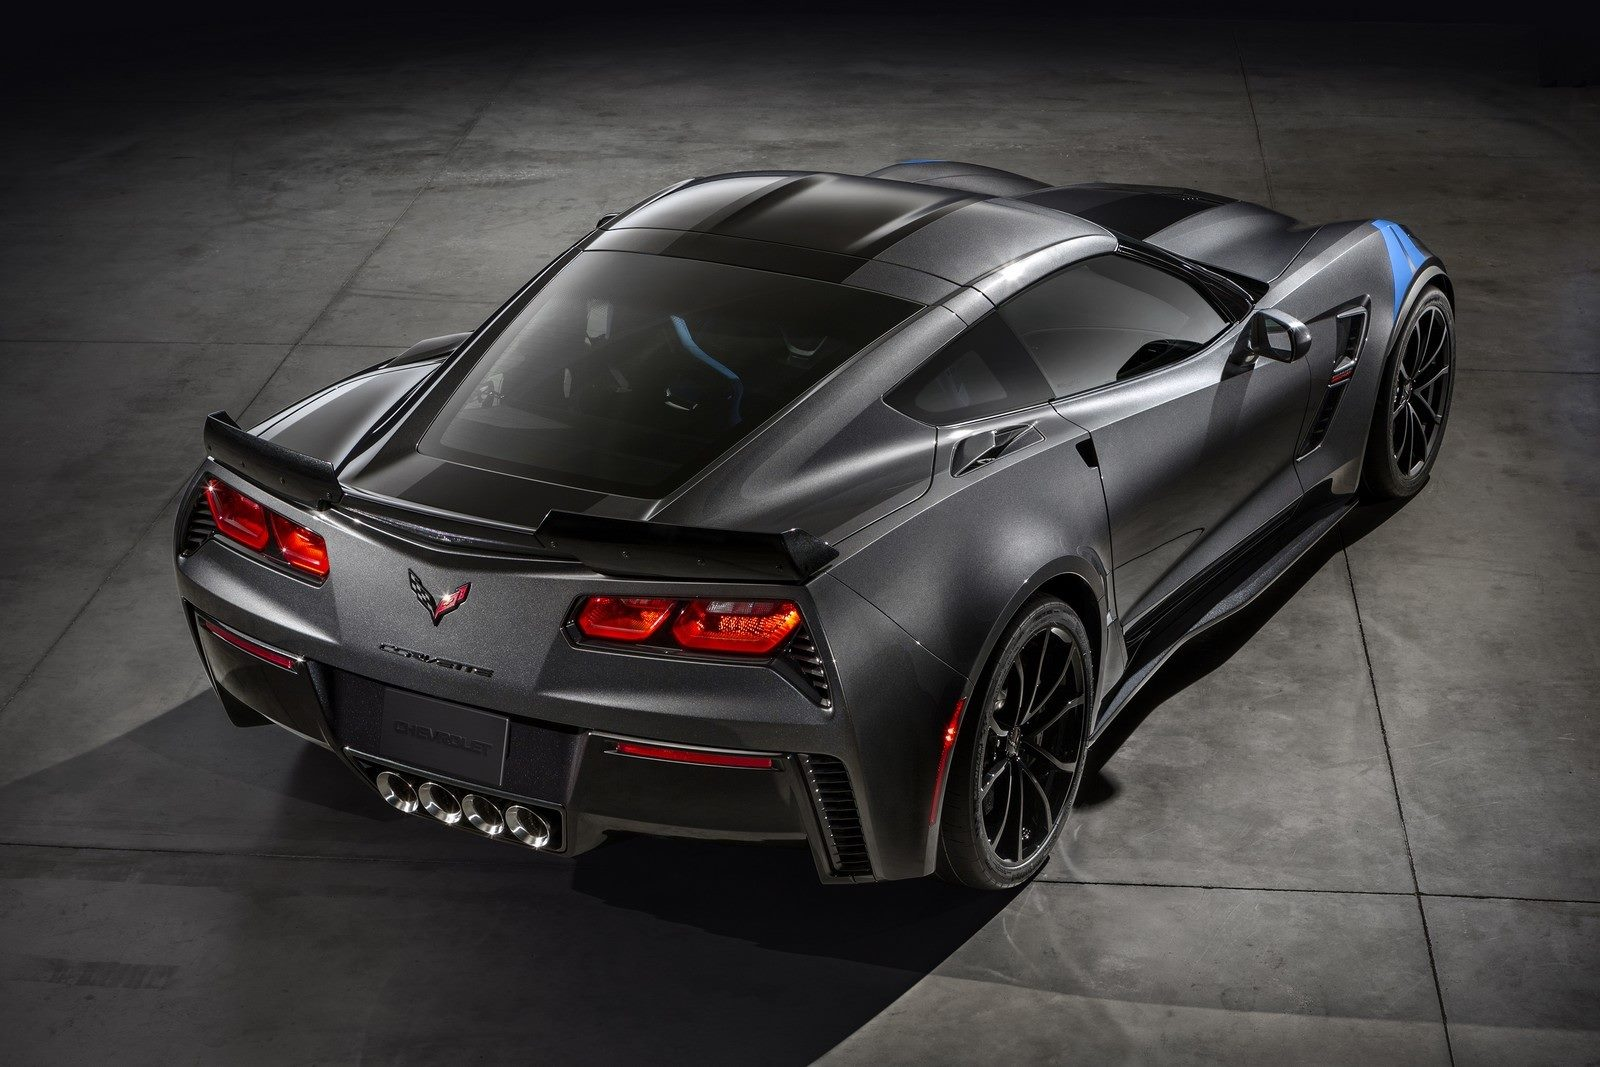 2017 Chevrolet Corvette Grand Sport Rear View